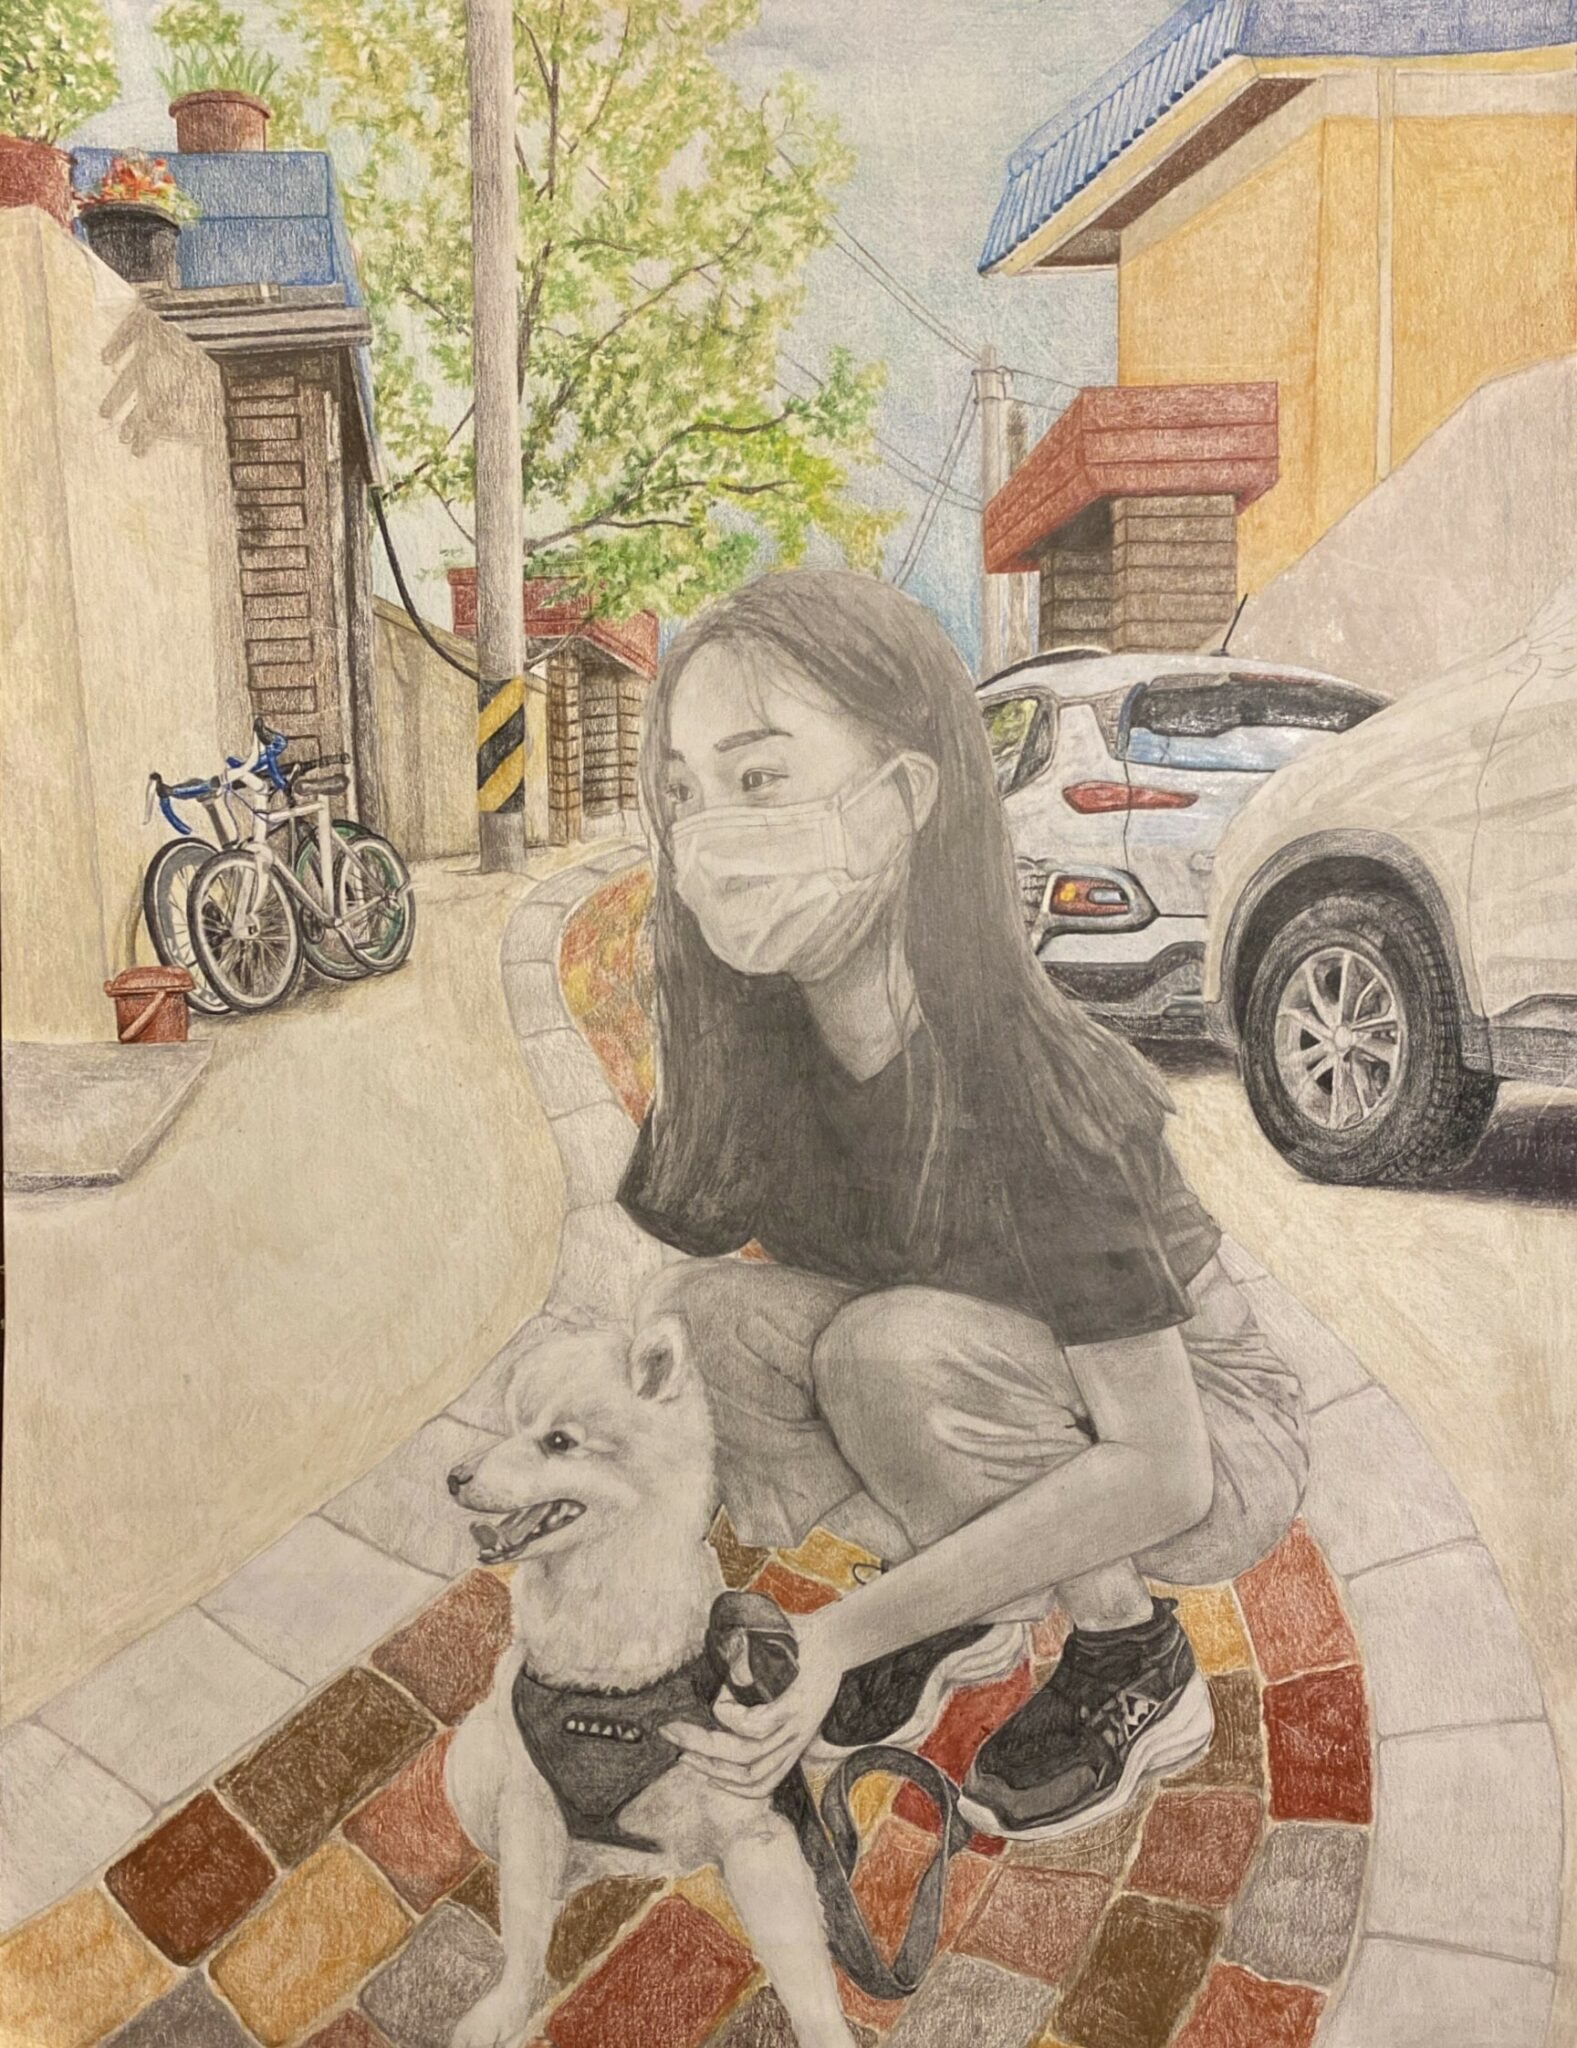 drawing with girl masked and dog in street